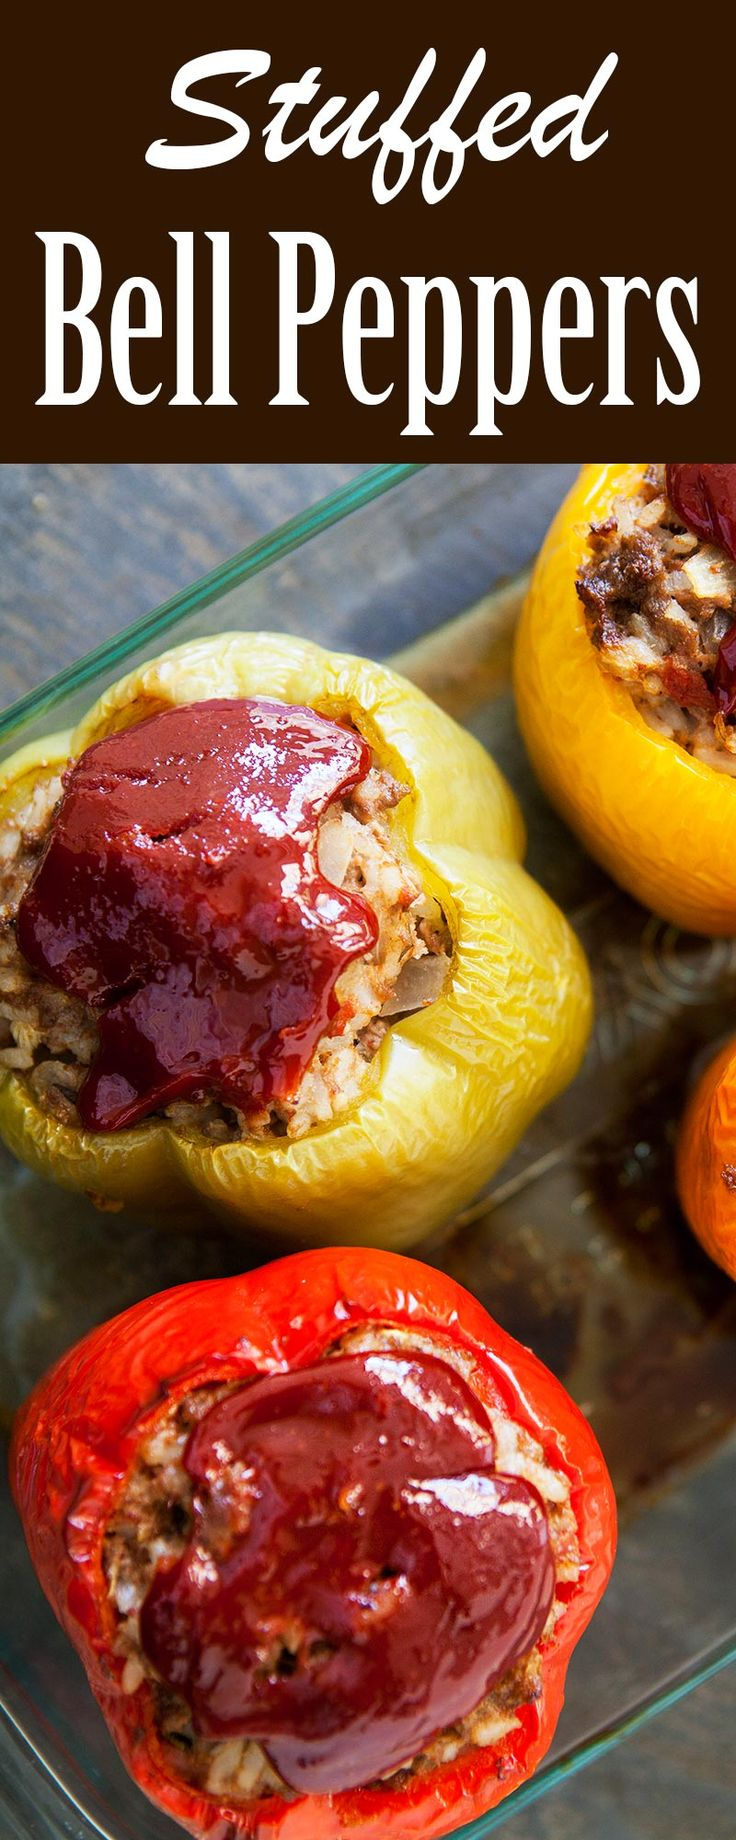 Dad's Stuffed Bell Peppers ~ Bell peppers stuffed with a mixture of ...